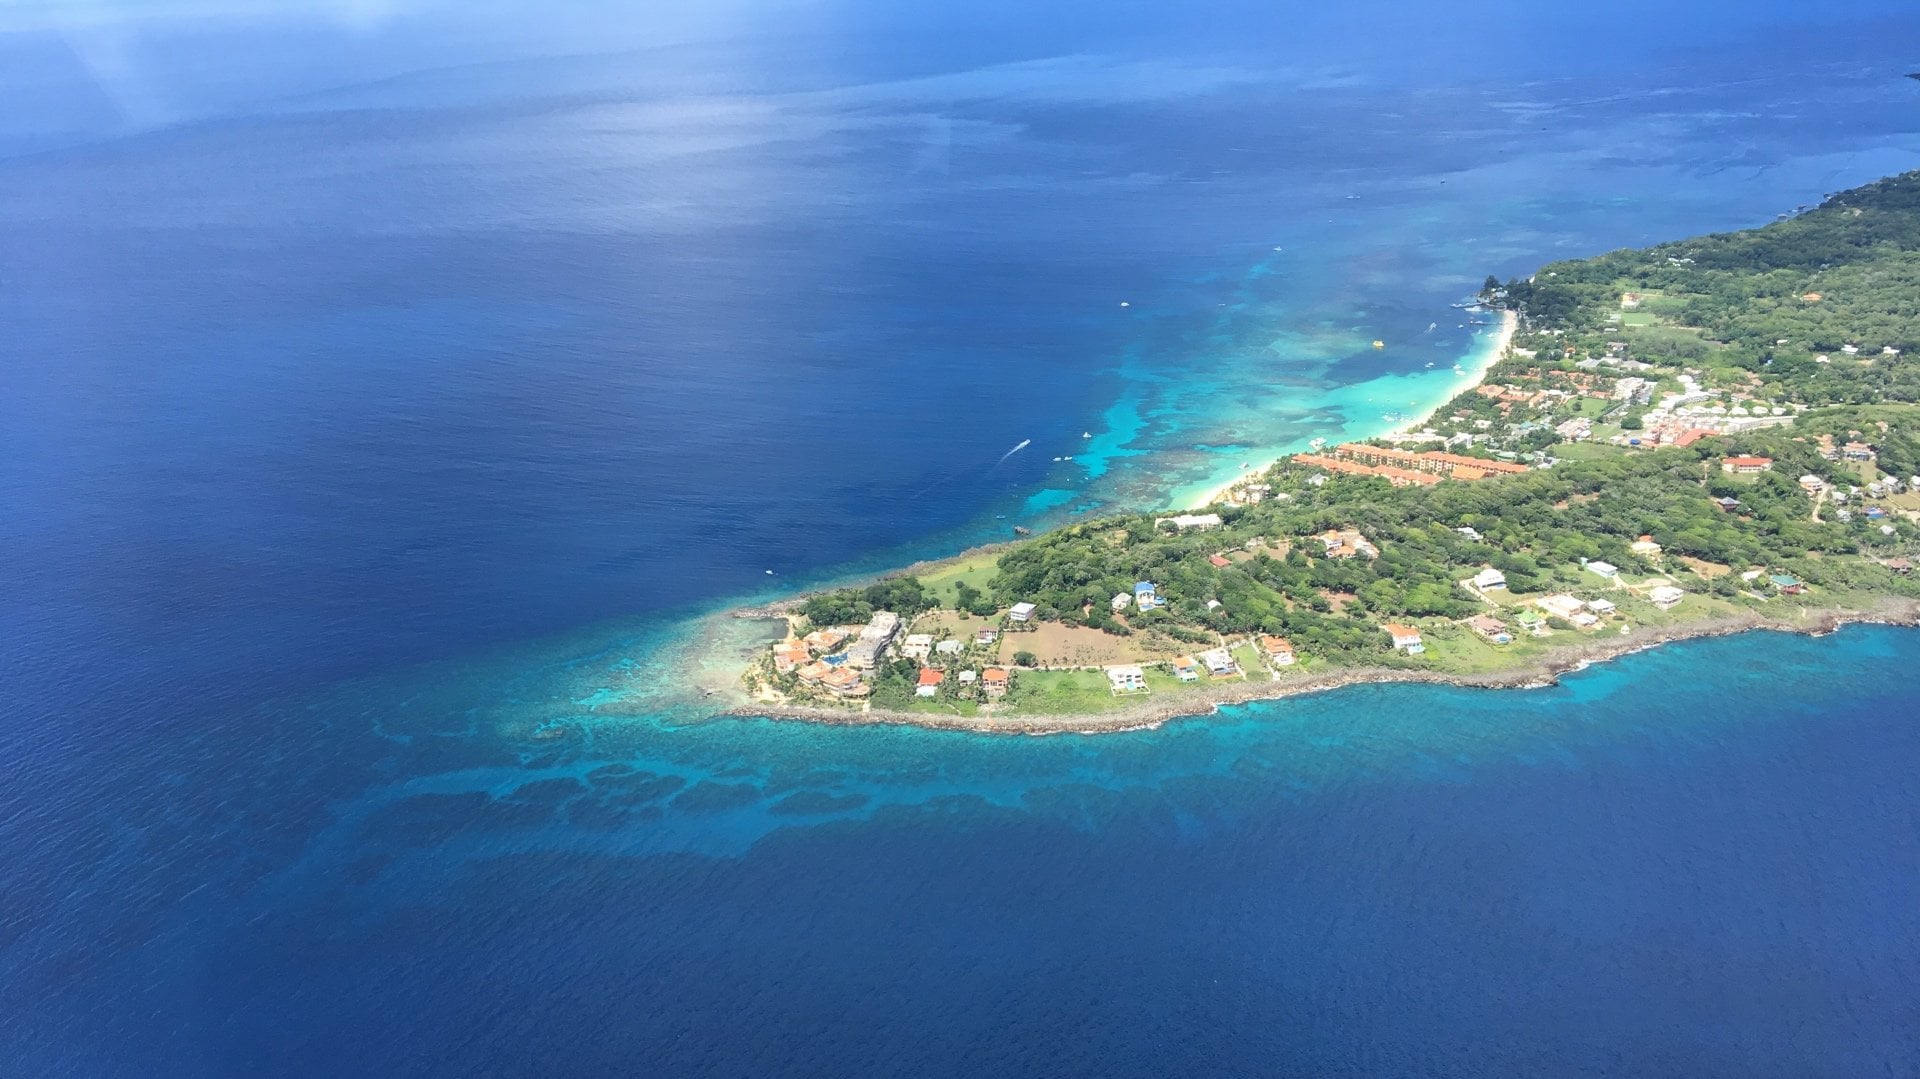 Arial shot of the island tip